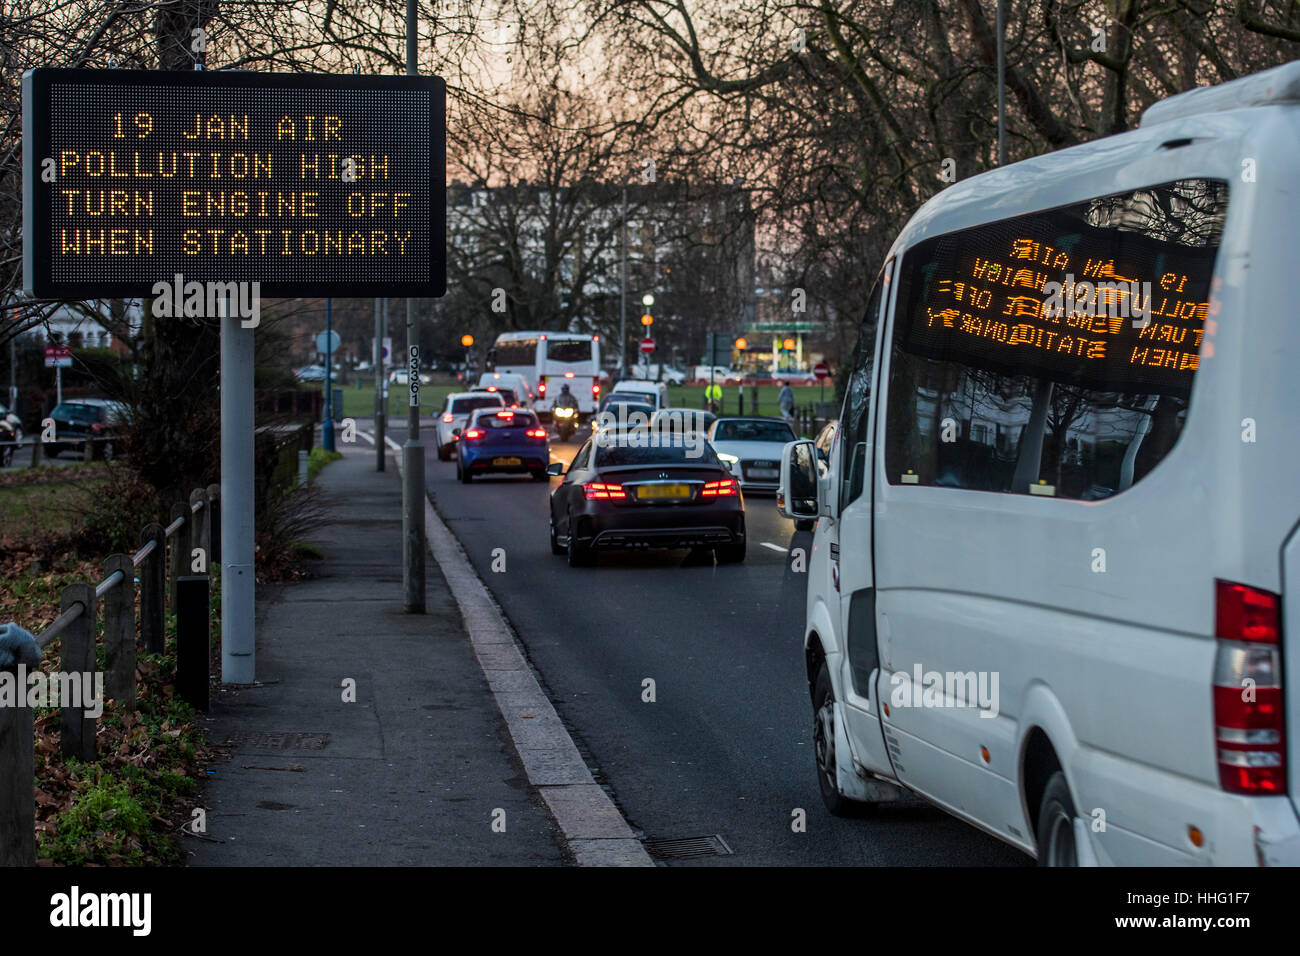 Wandsworth, London, UK. 19th Jan, 2017. A sign warns of high pollution levels in Wandsworth as the evening rush - Stock Image